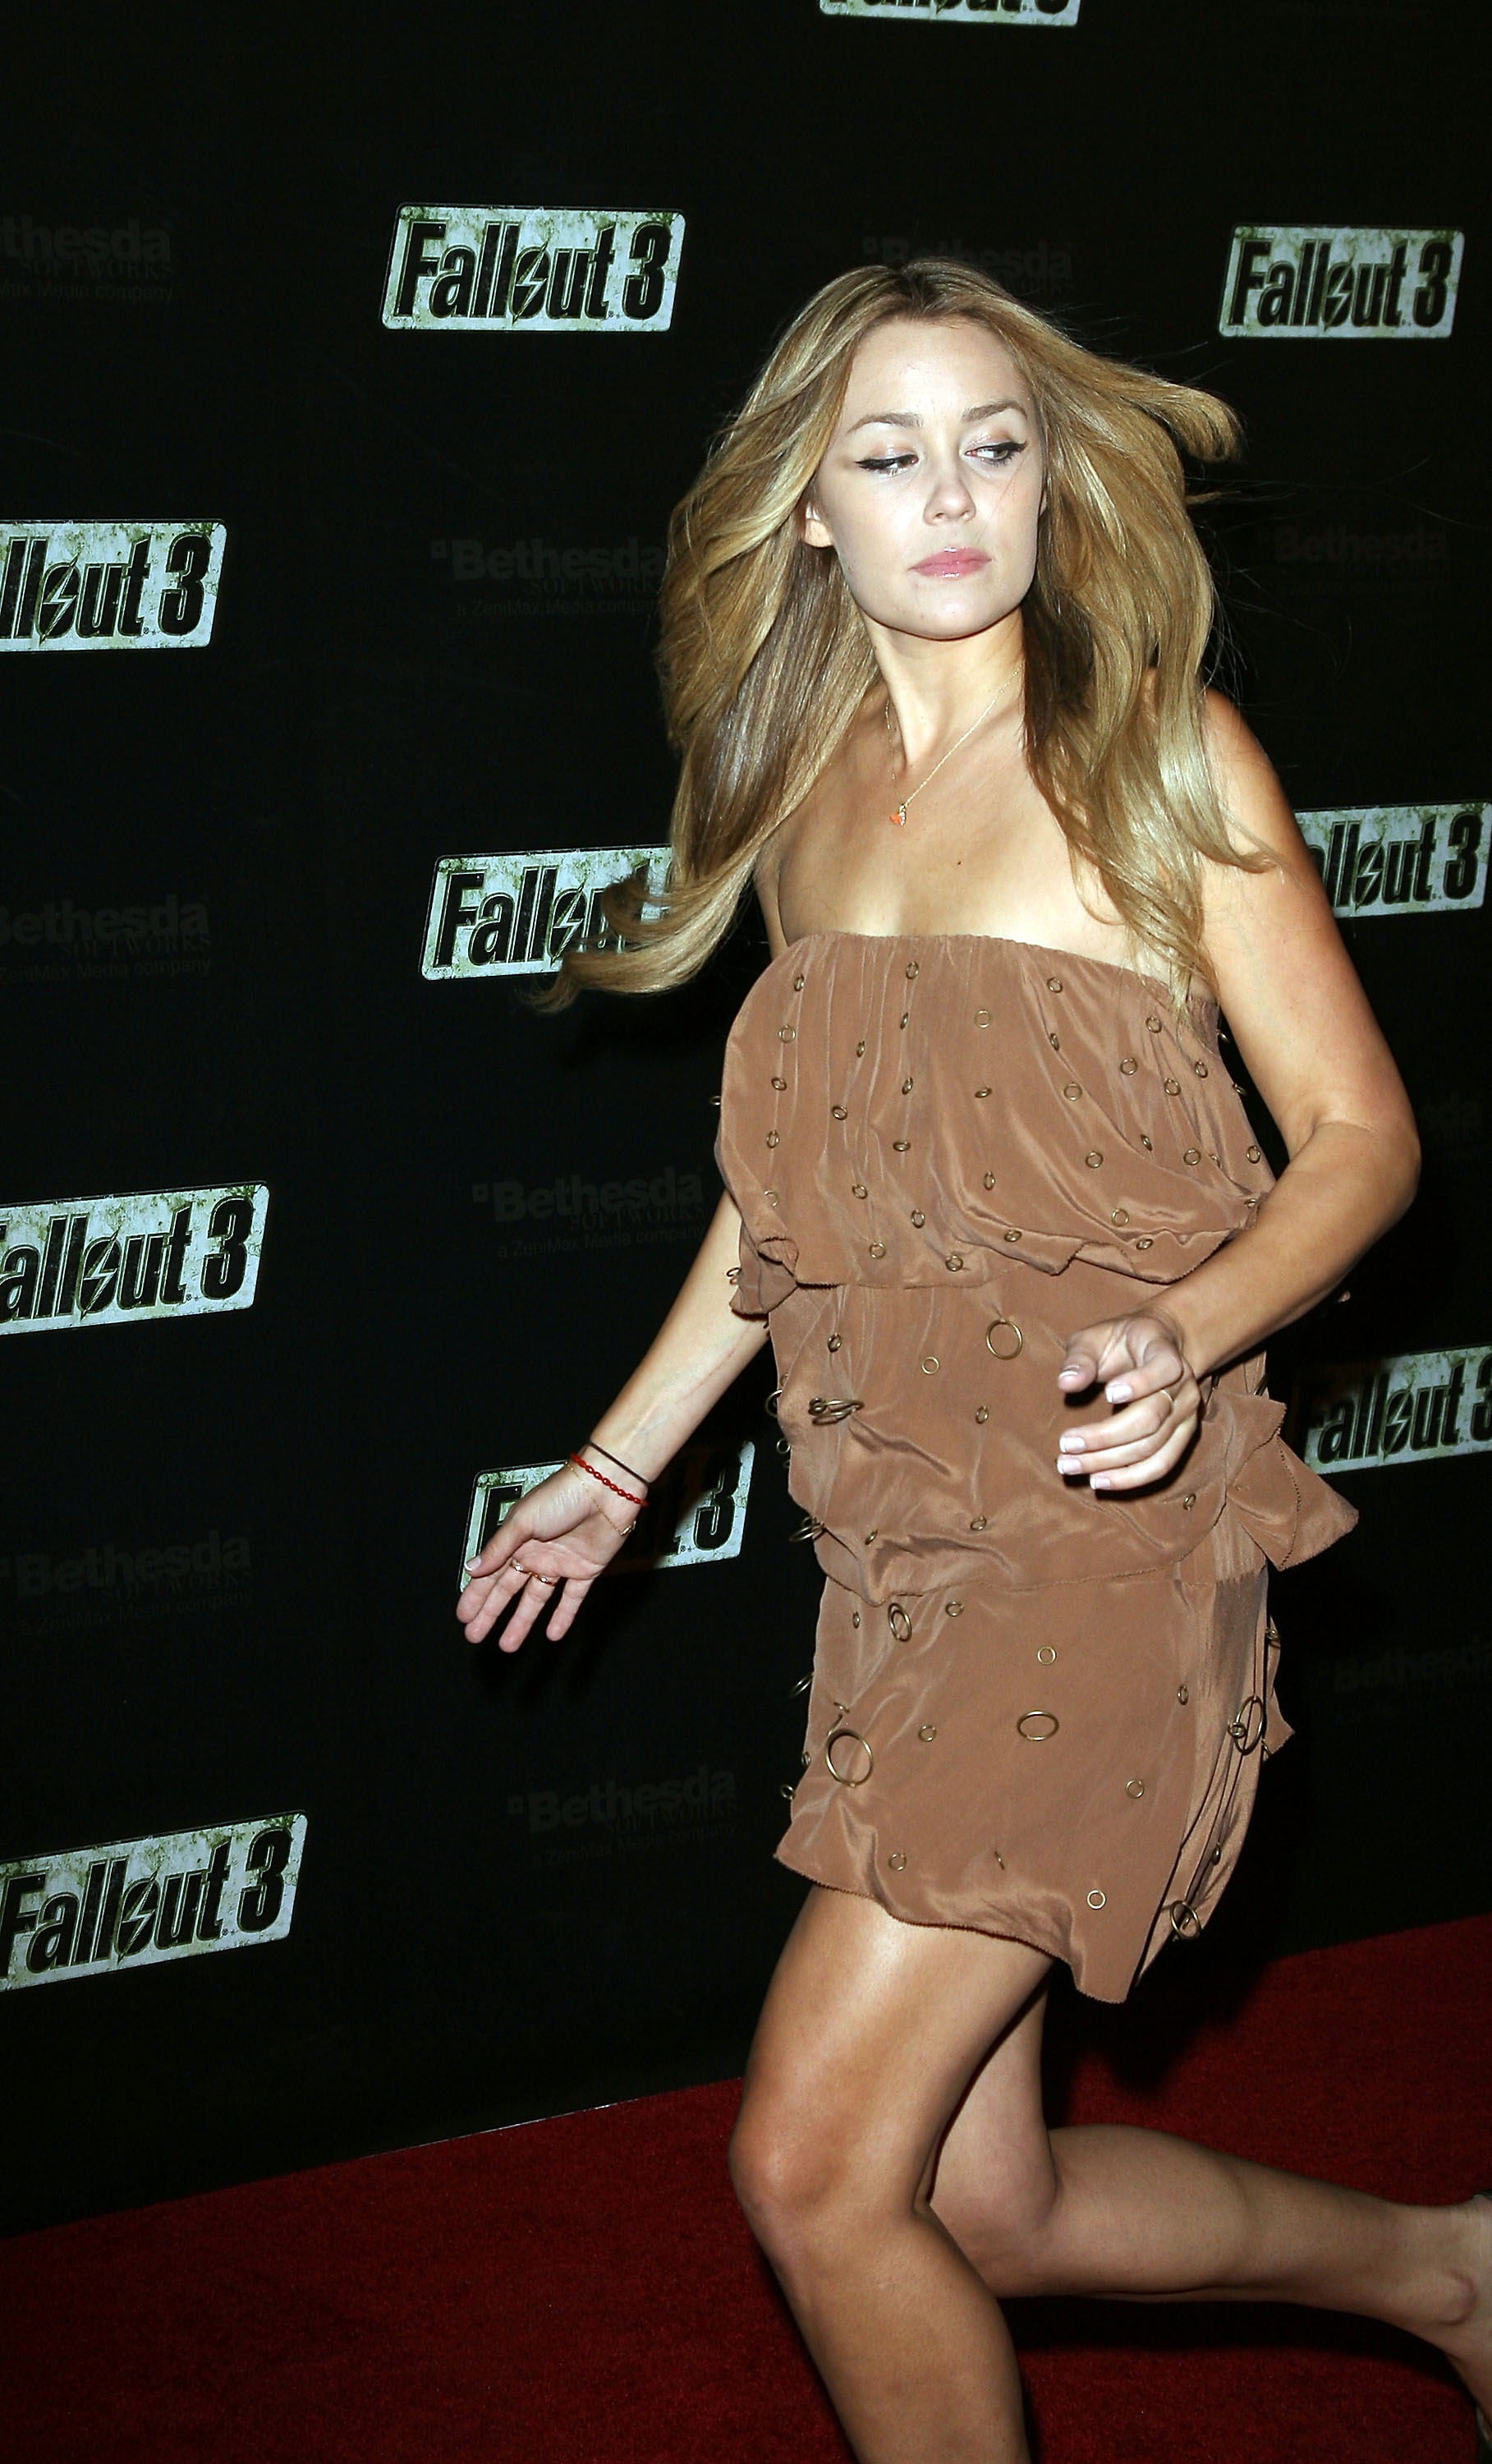 55203_Celebutopia-Lauren_Conrad-Launch_Party_for_Fallout_3_videogame-02_122_950lo.jpg